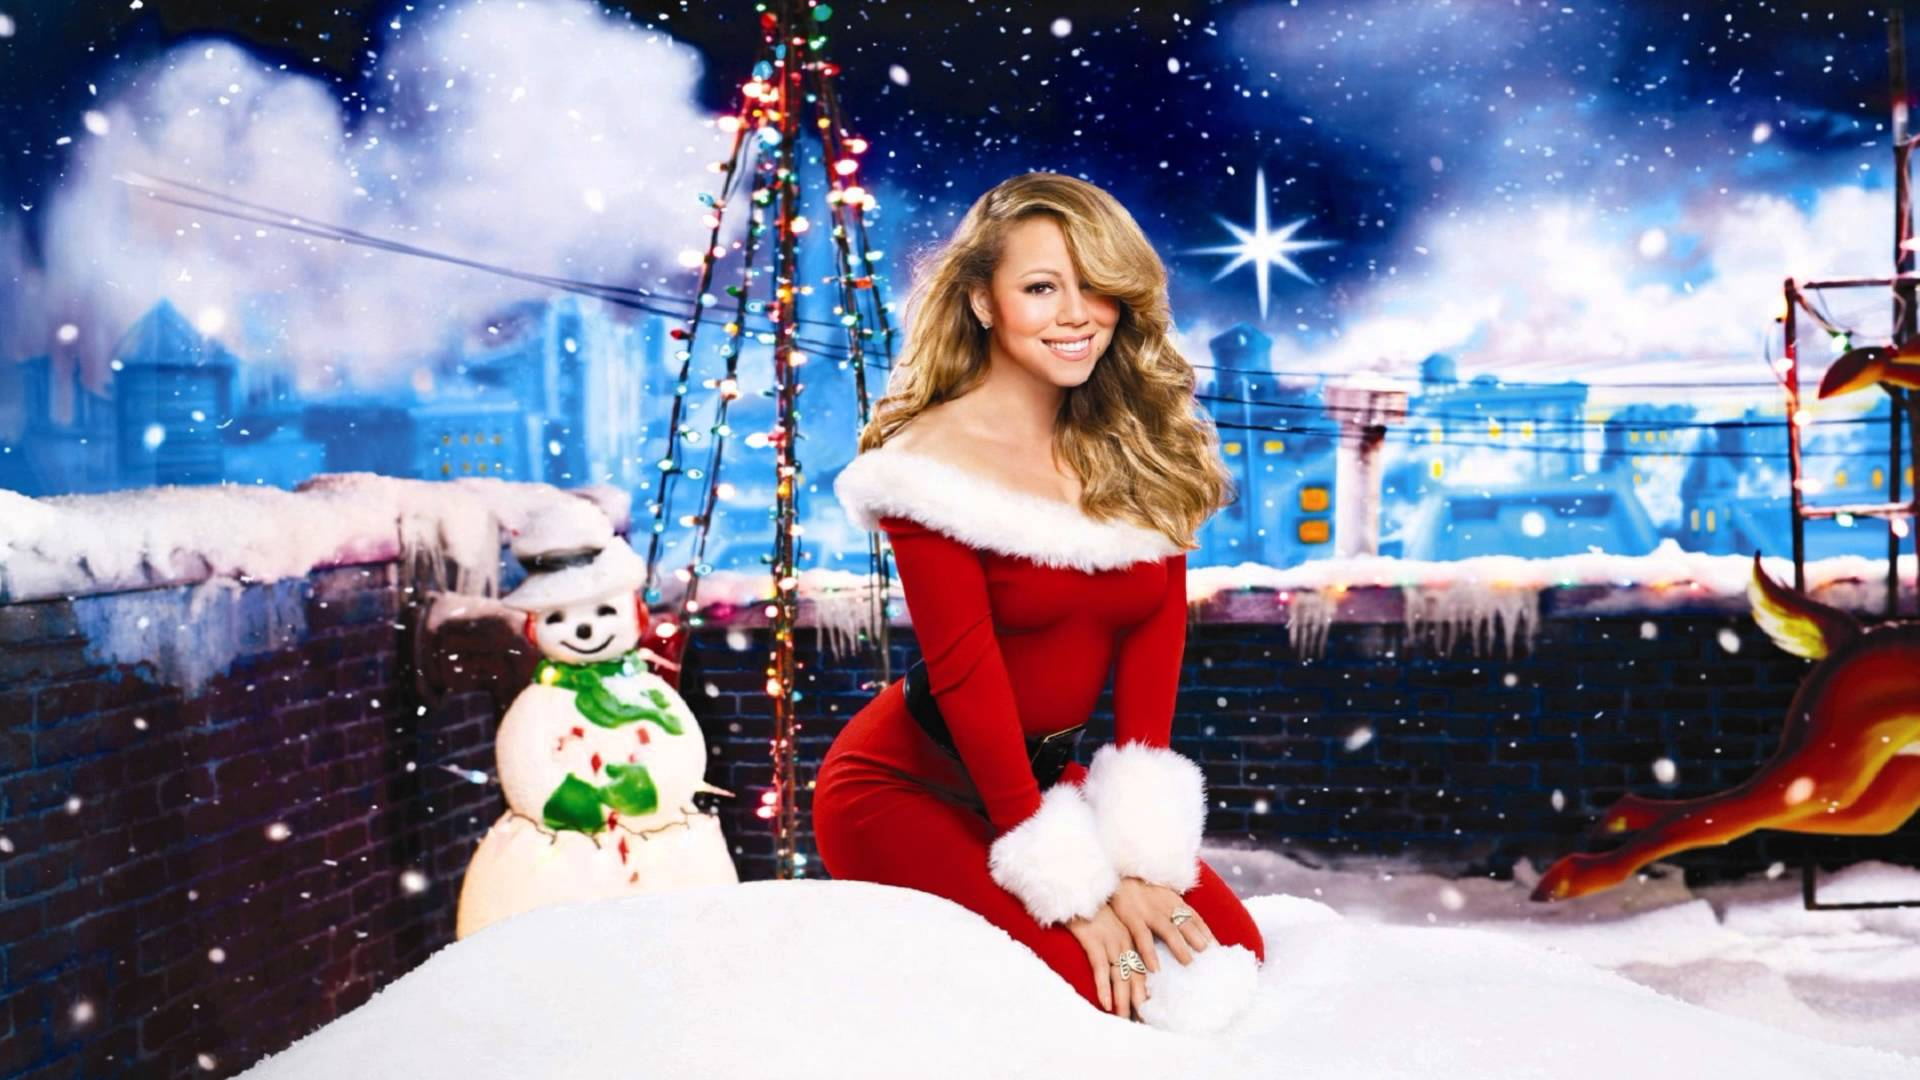 6 of the Best Christmas Songs Sung by Women for Your Holiday Playlist